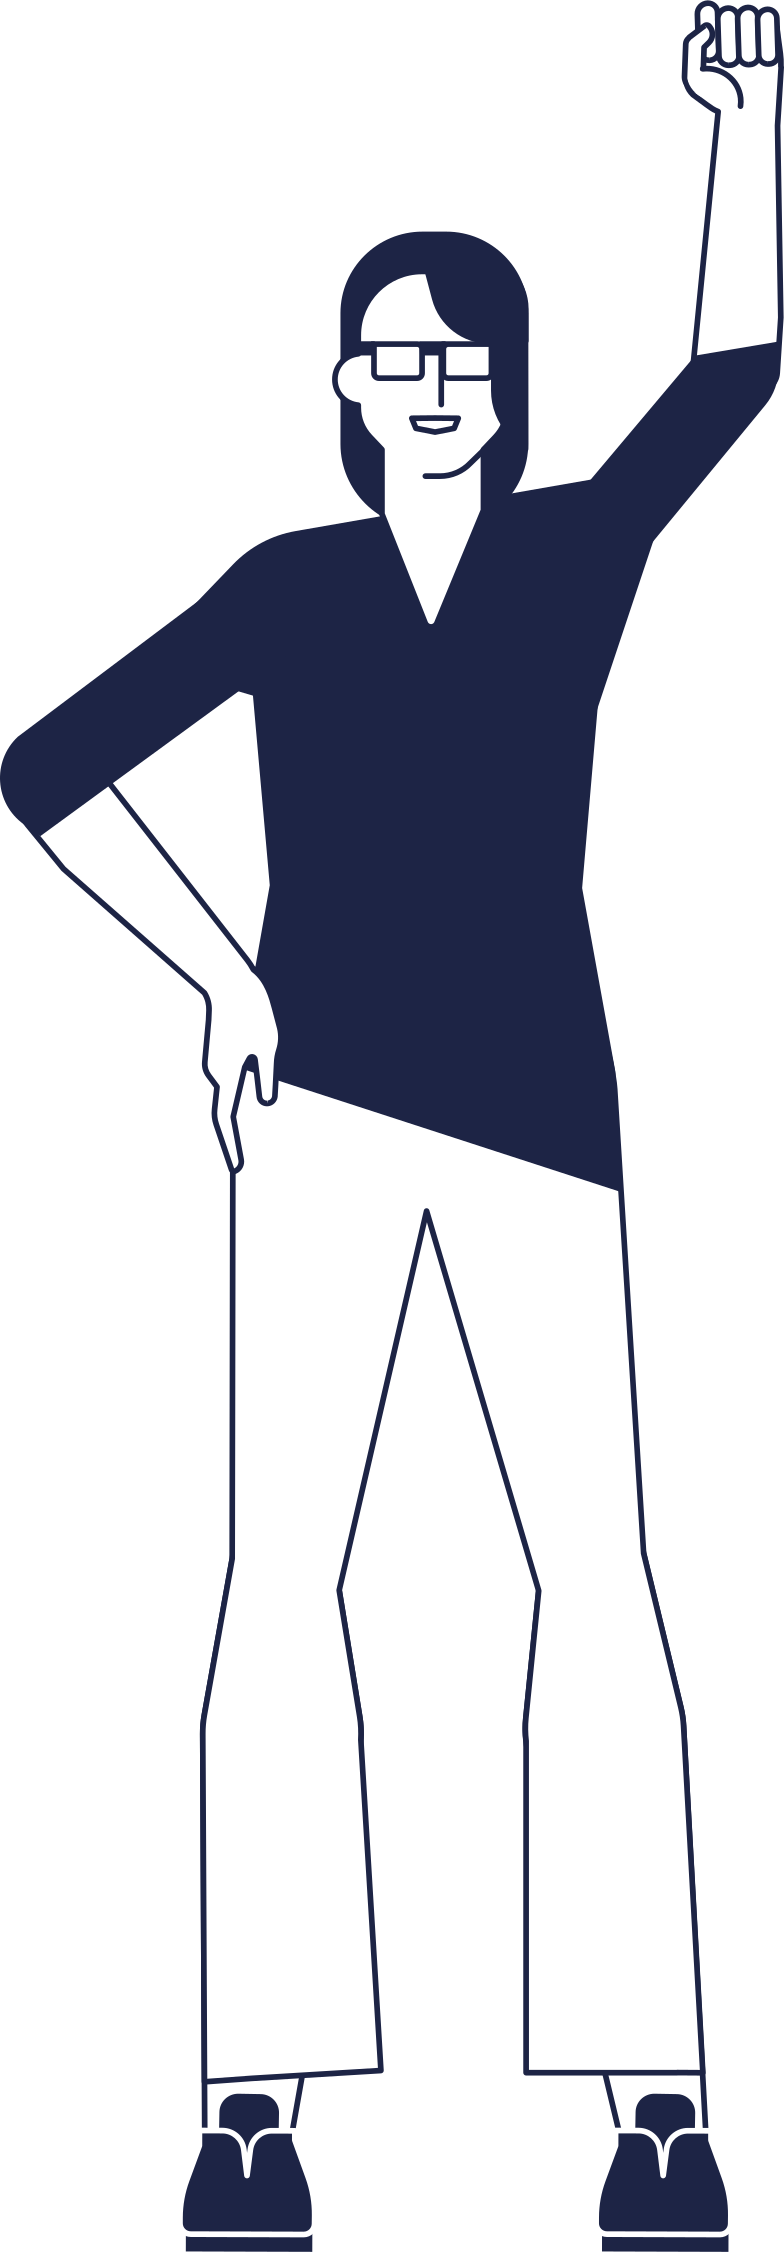 style woman activist Vector images in PNG and SVG | Icons8 Illustrations